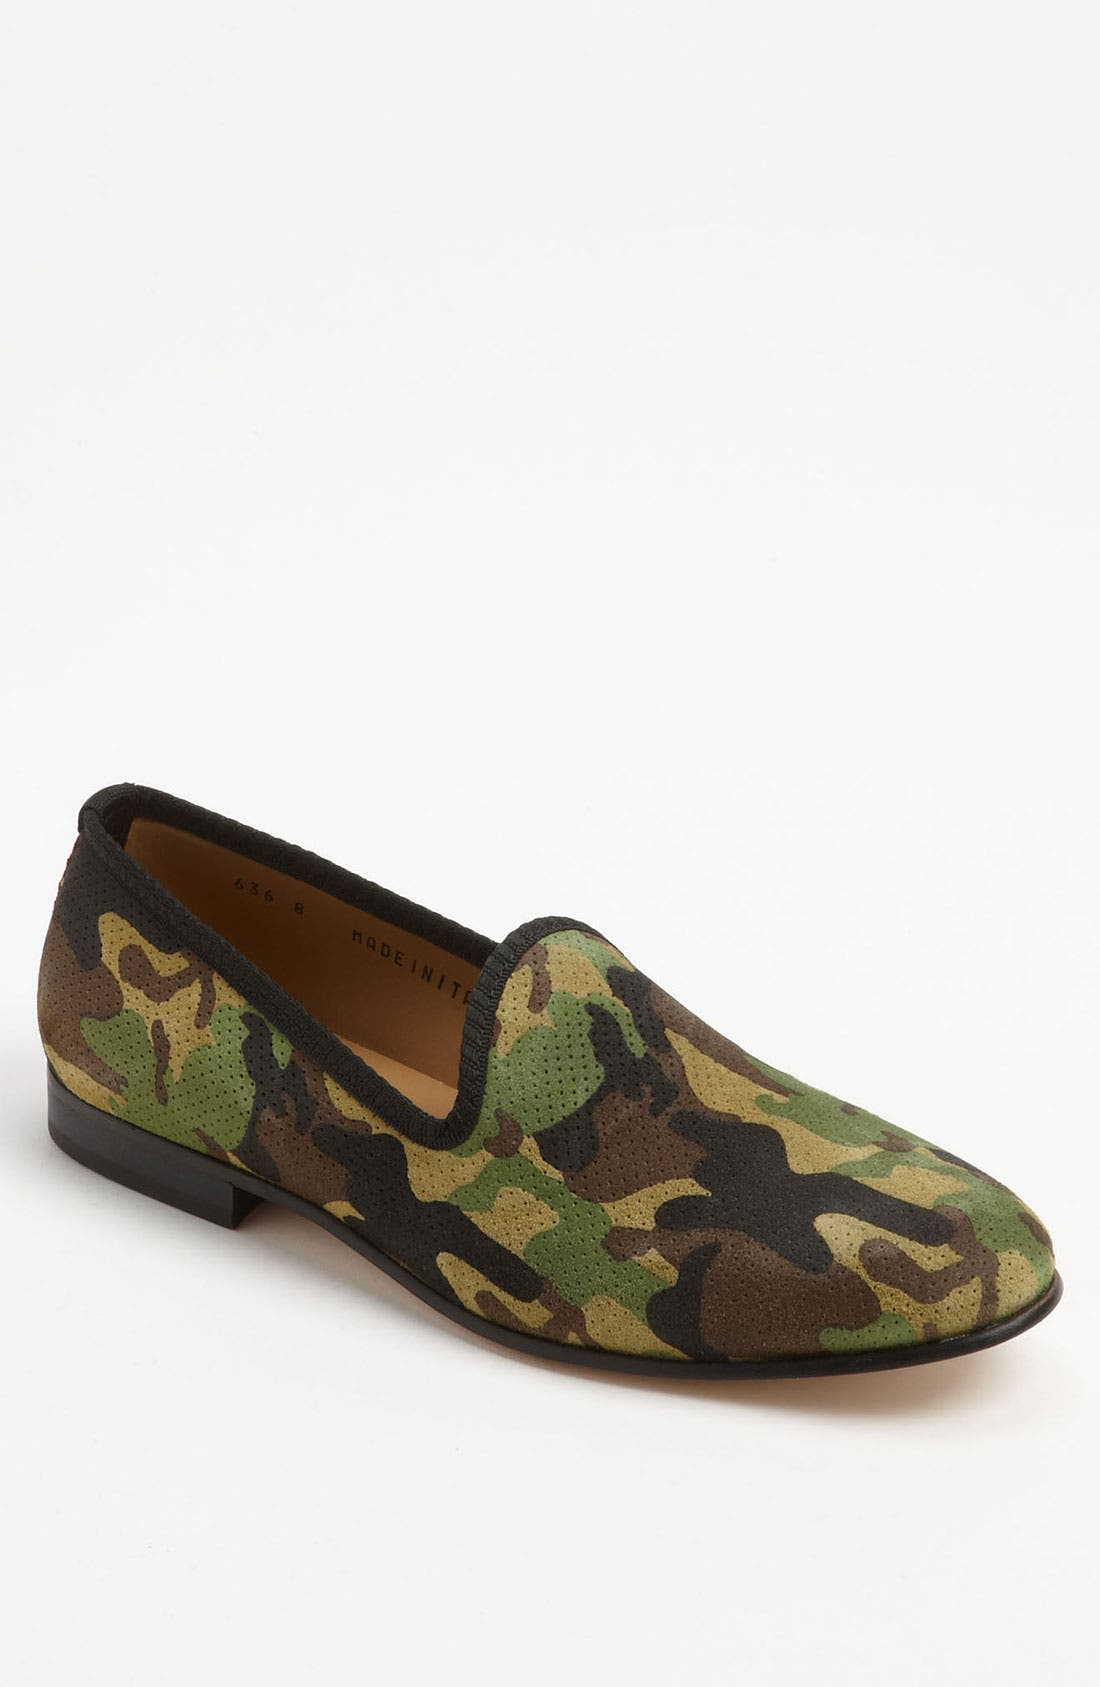 Alternate Image 1 Selected - Del Toro Camo Loafer